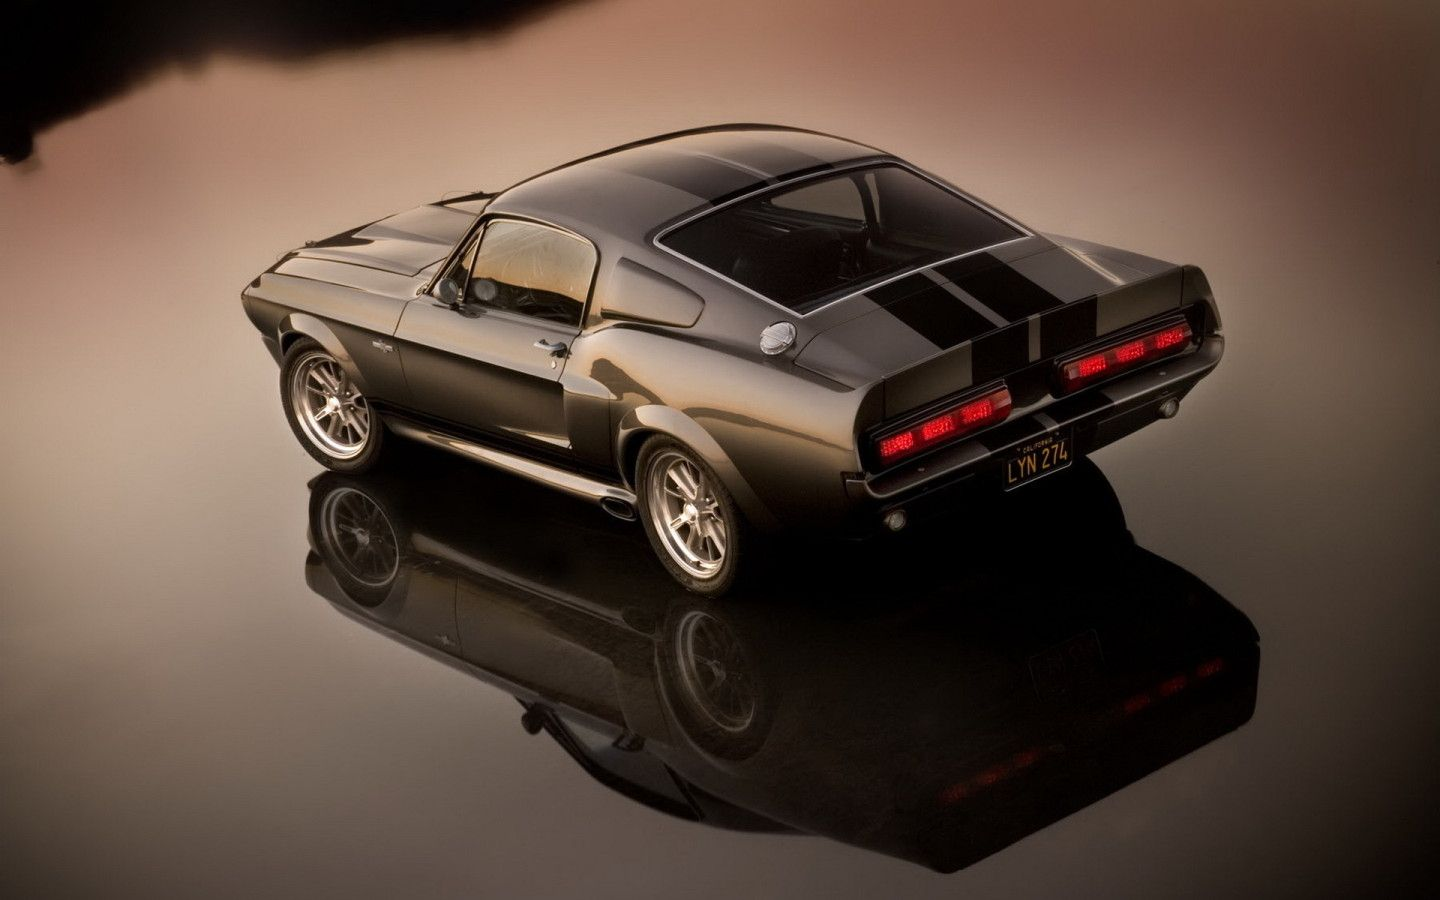 Ford Mustang 1967 Shelby GT500 Wallpaper jS7aovaxx  Ideas for the